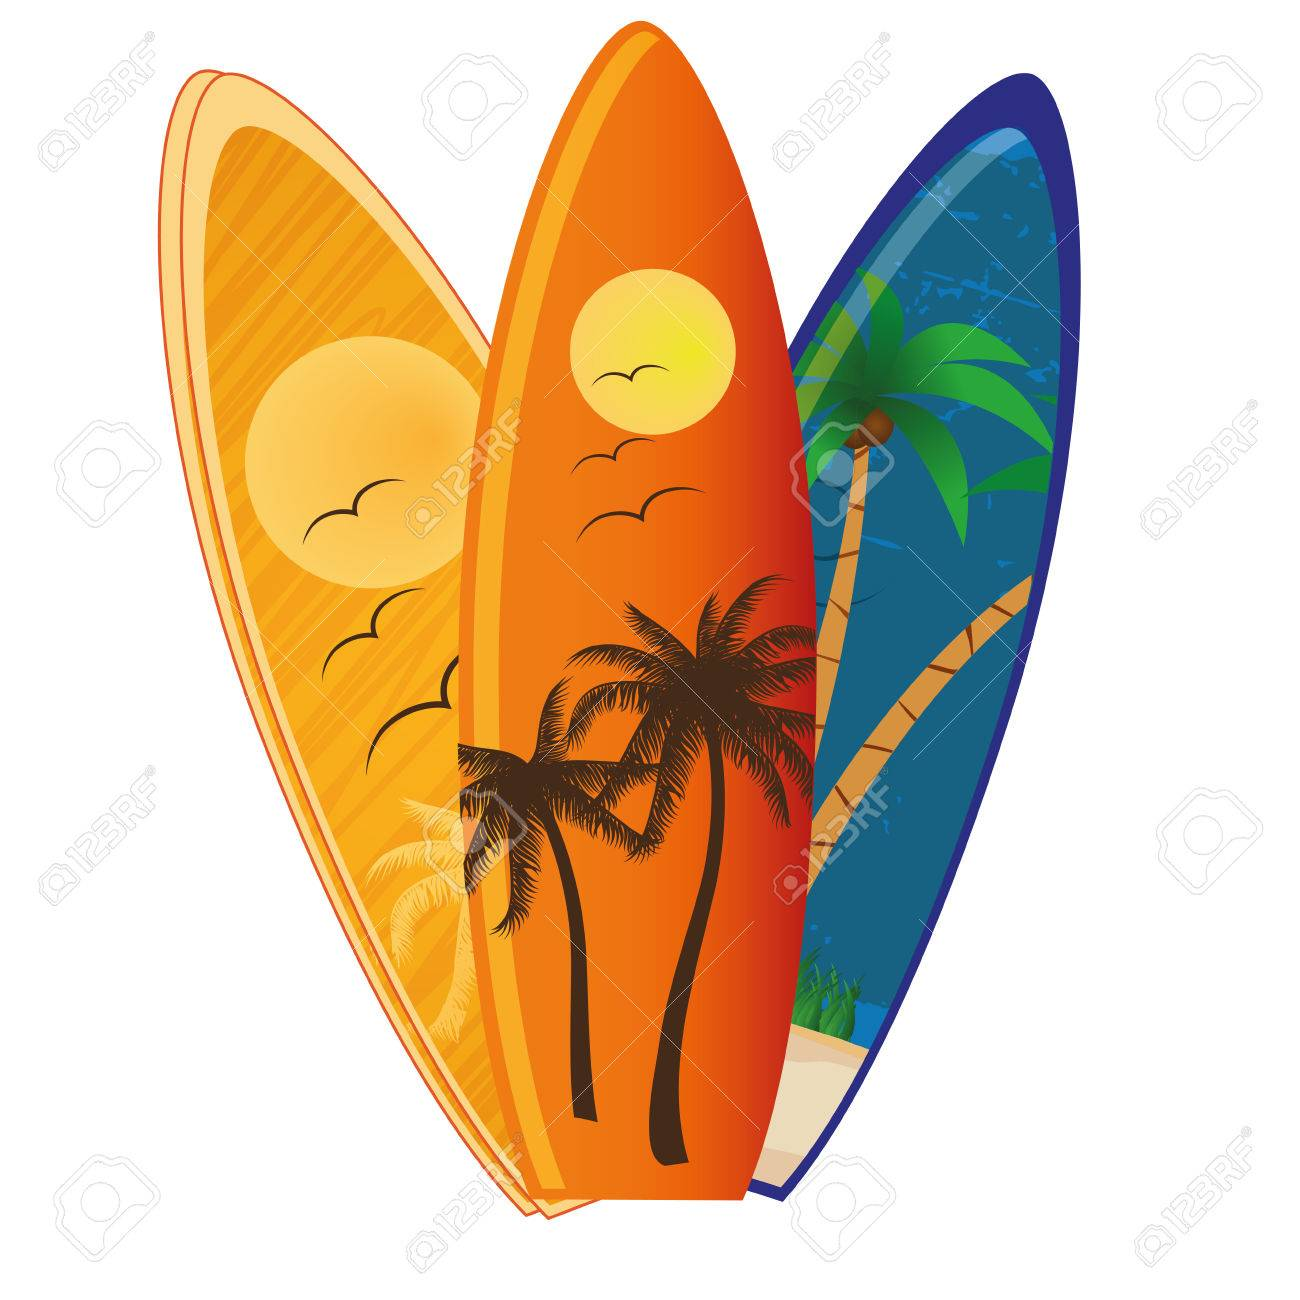 three different surfboards with different textures and colors - 24502680